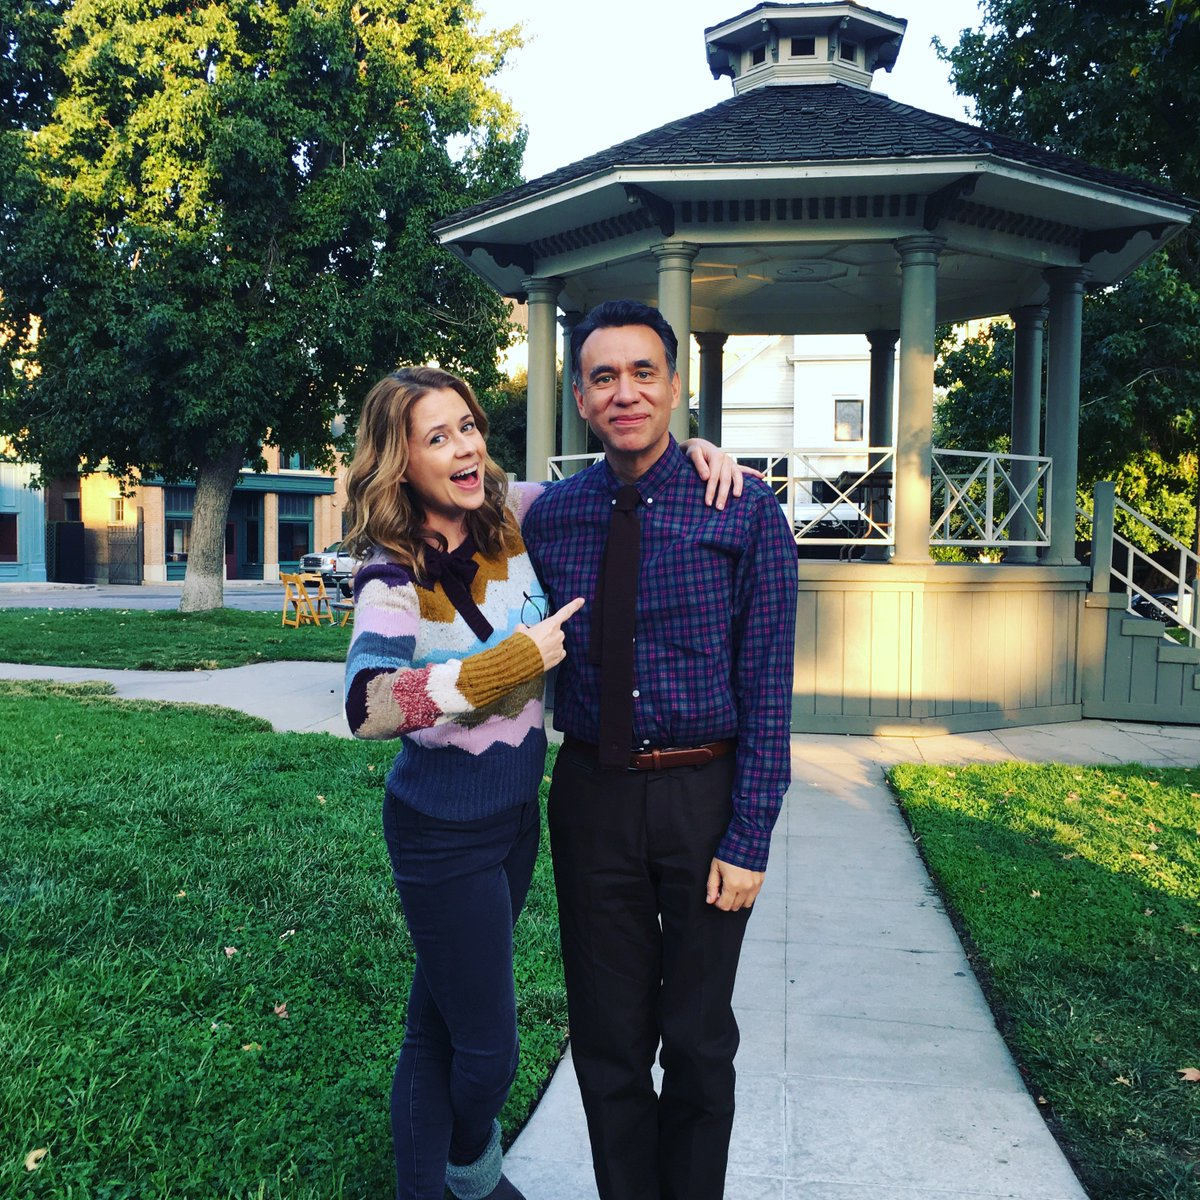 This person is my friend and he's on Splitting Up Together TONIGHT! #FredArmisen #splittinguptogether #abc